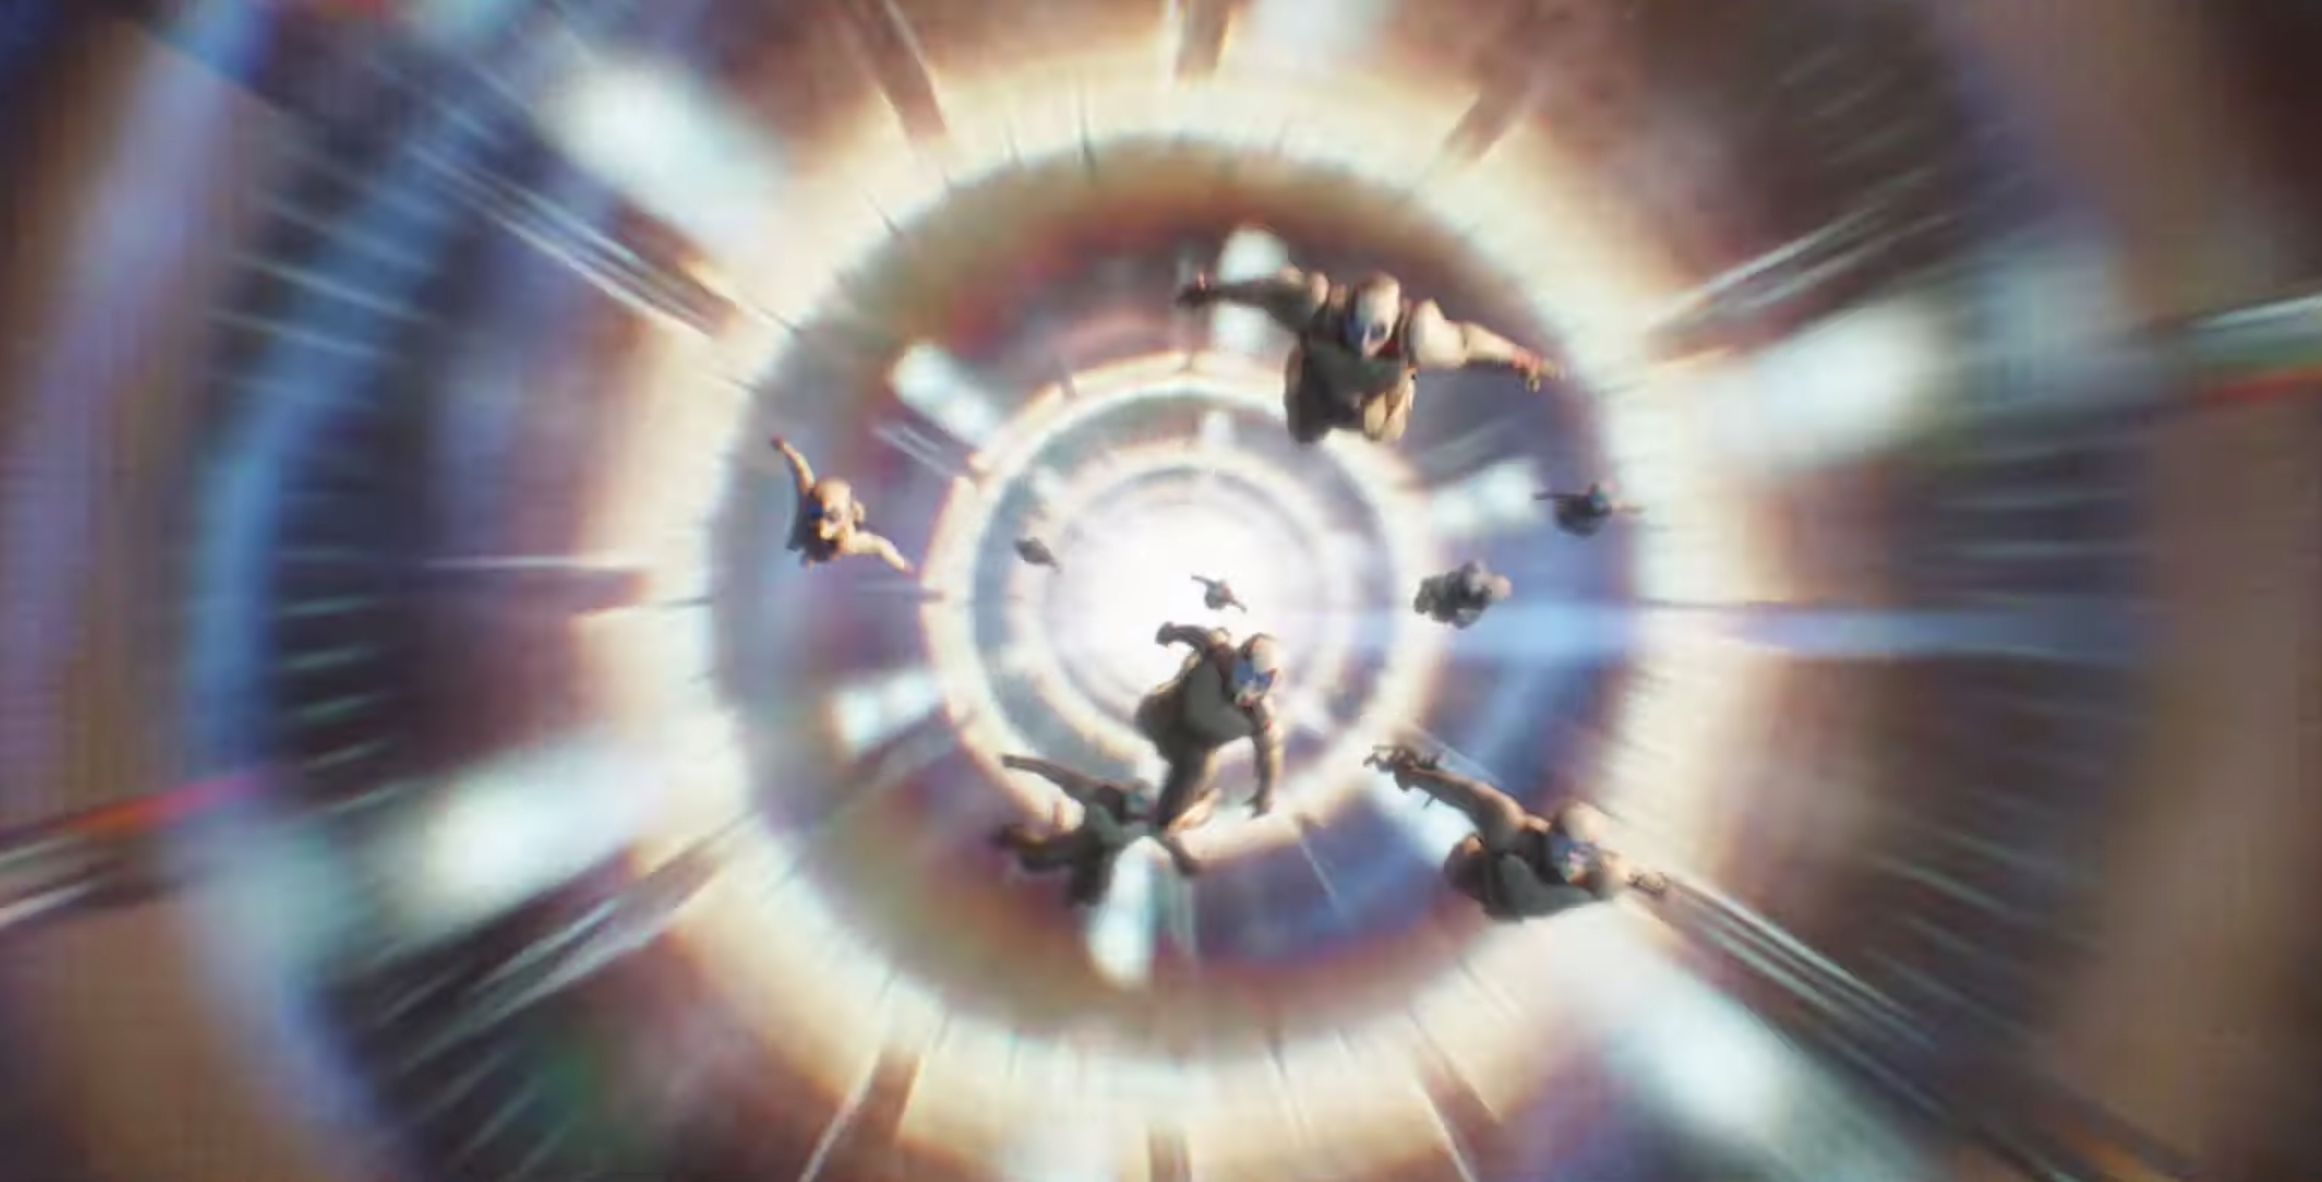 Somehow, Avengers: Endgame Has Even More Footage To Tempt You With In Its Home Release